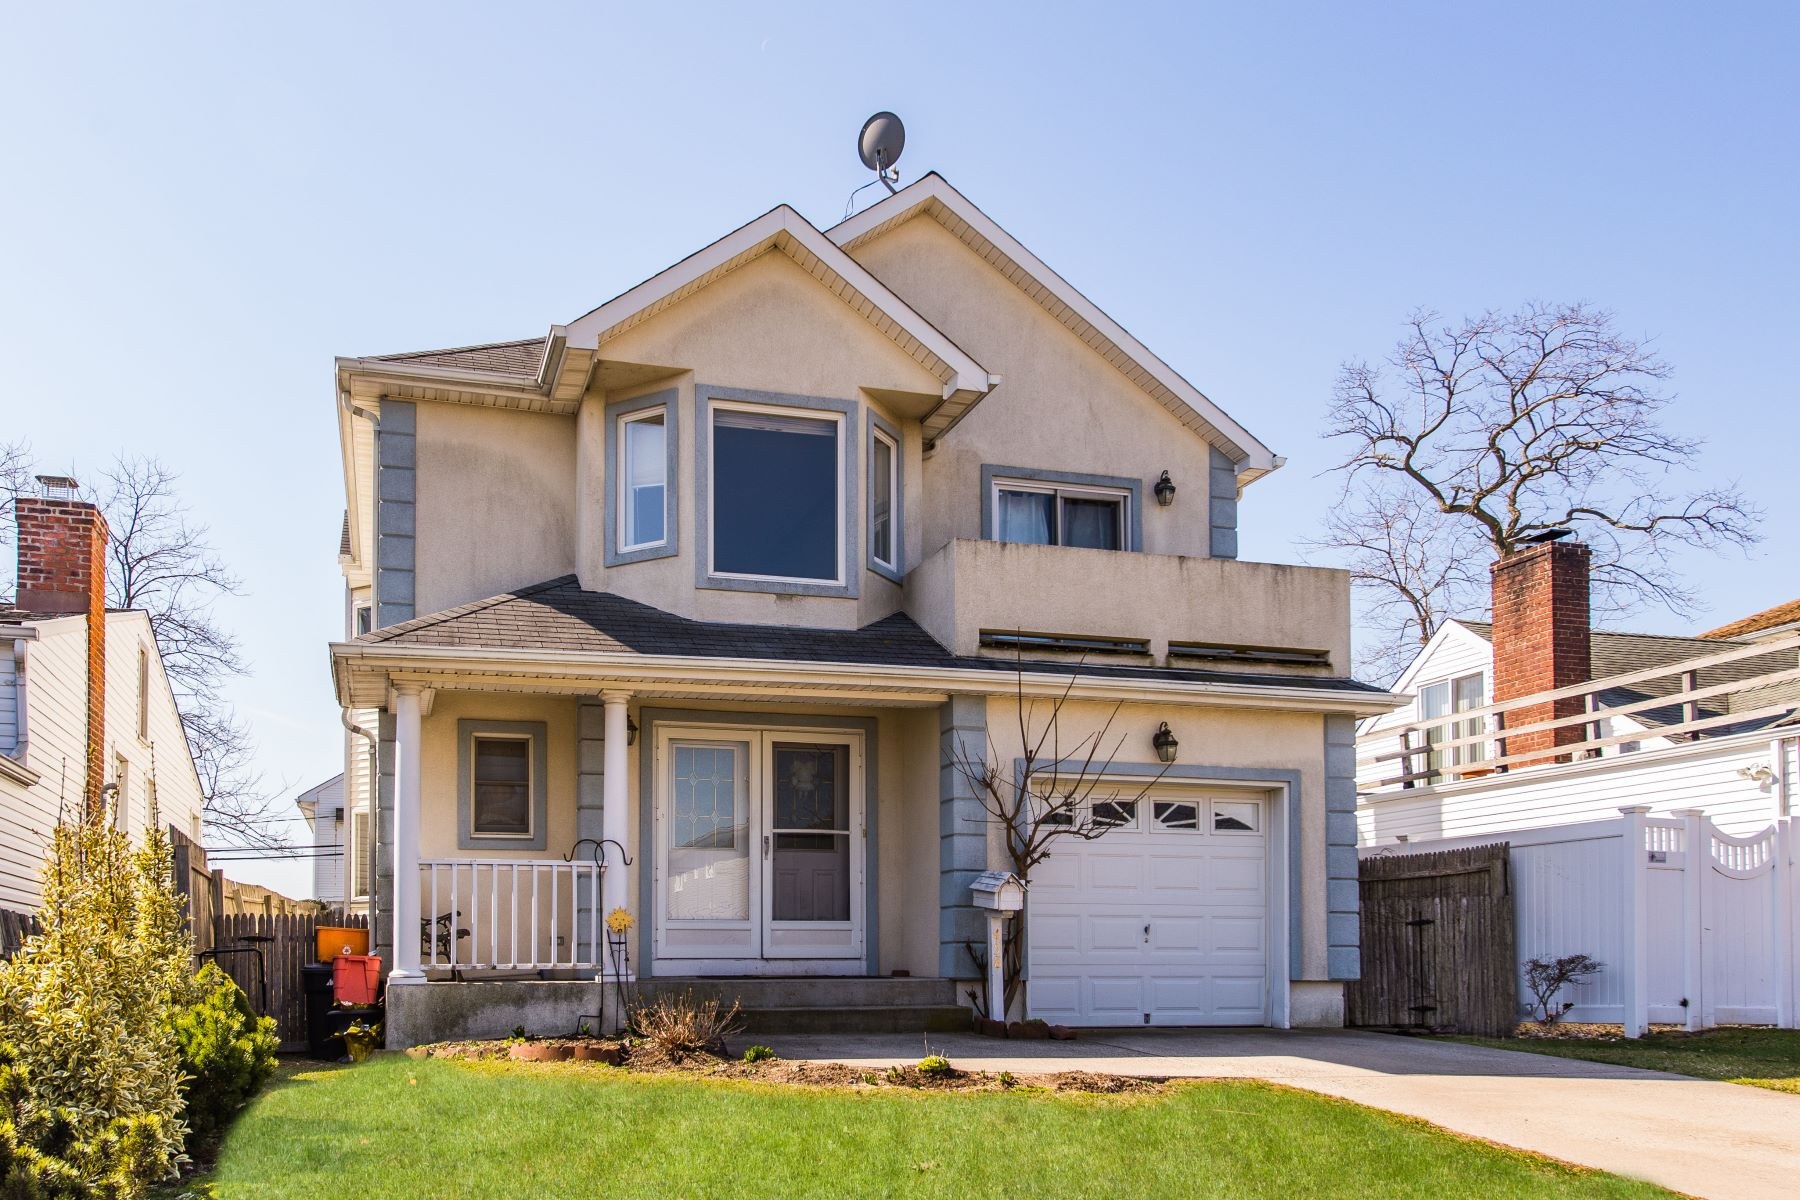 Single Family Home for Sale at 458 E Pine St , Long Beach, NY 11561 458 E Pine St Long Beach, New York 11561 United States